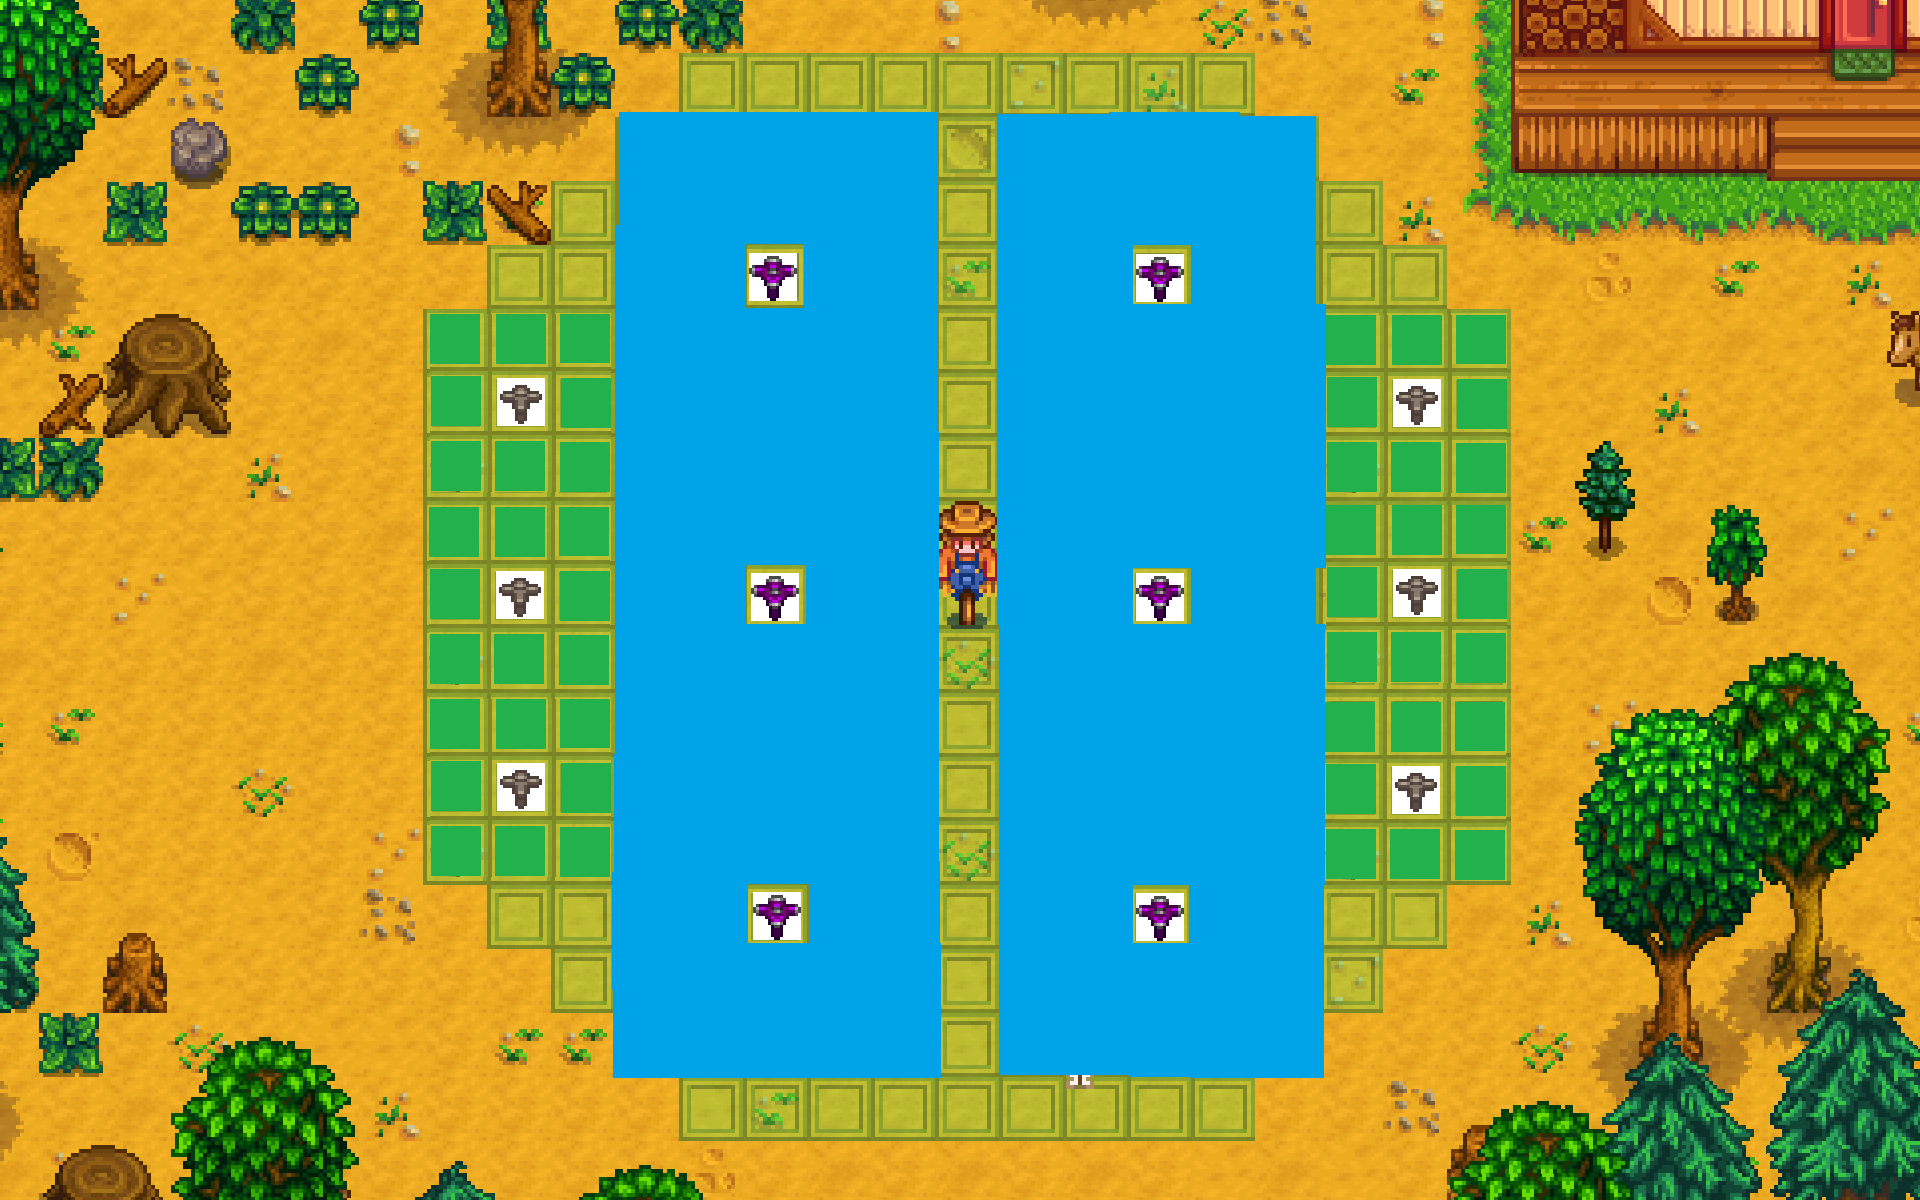 Stardew Valley sprinkler layout | Stardew valley, Stardew valley ...